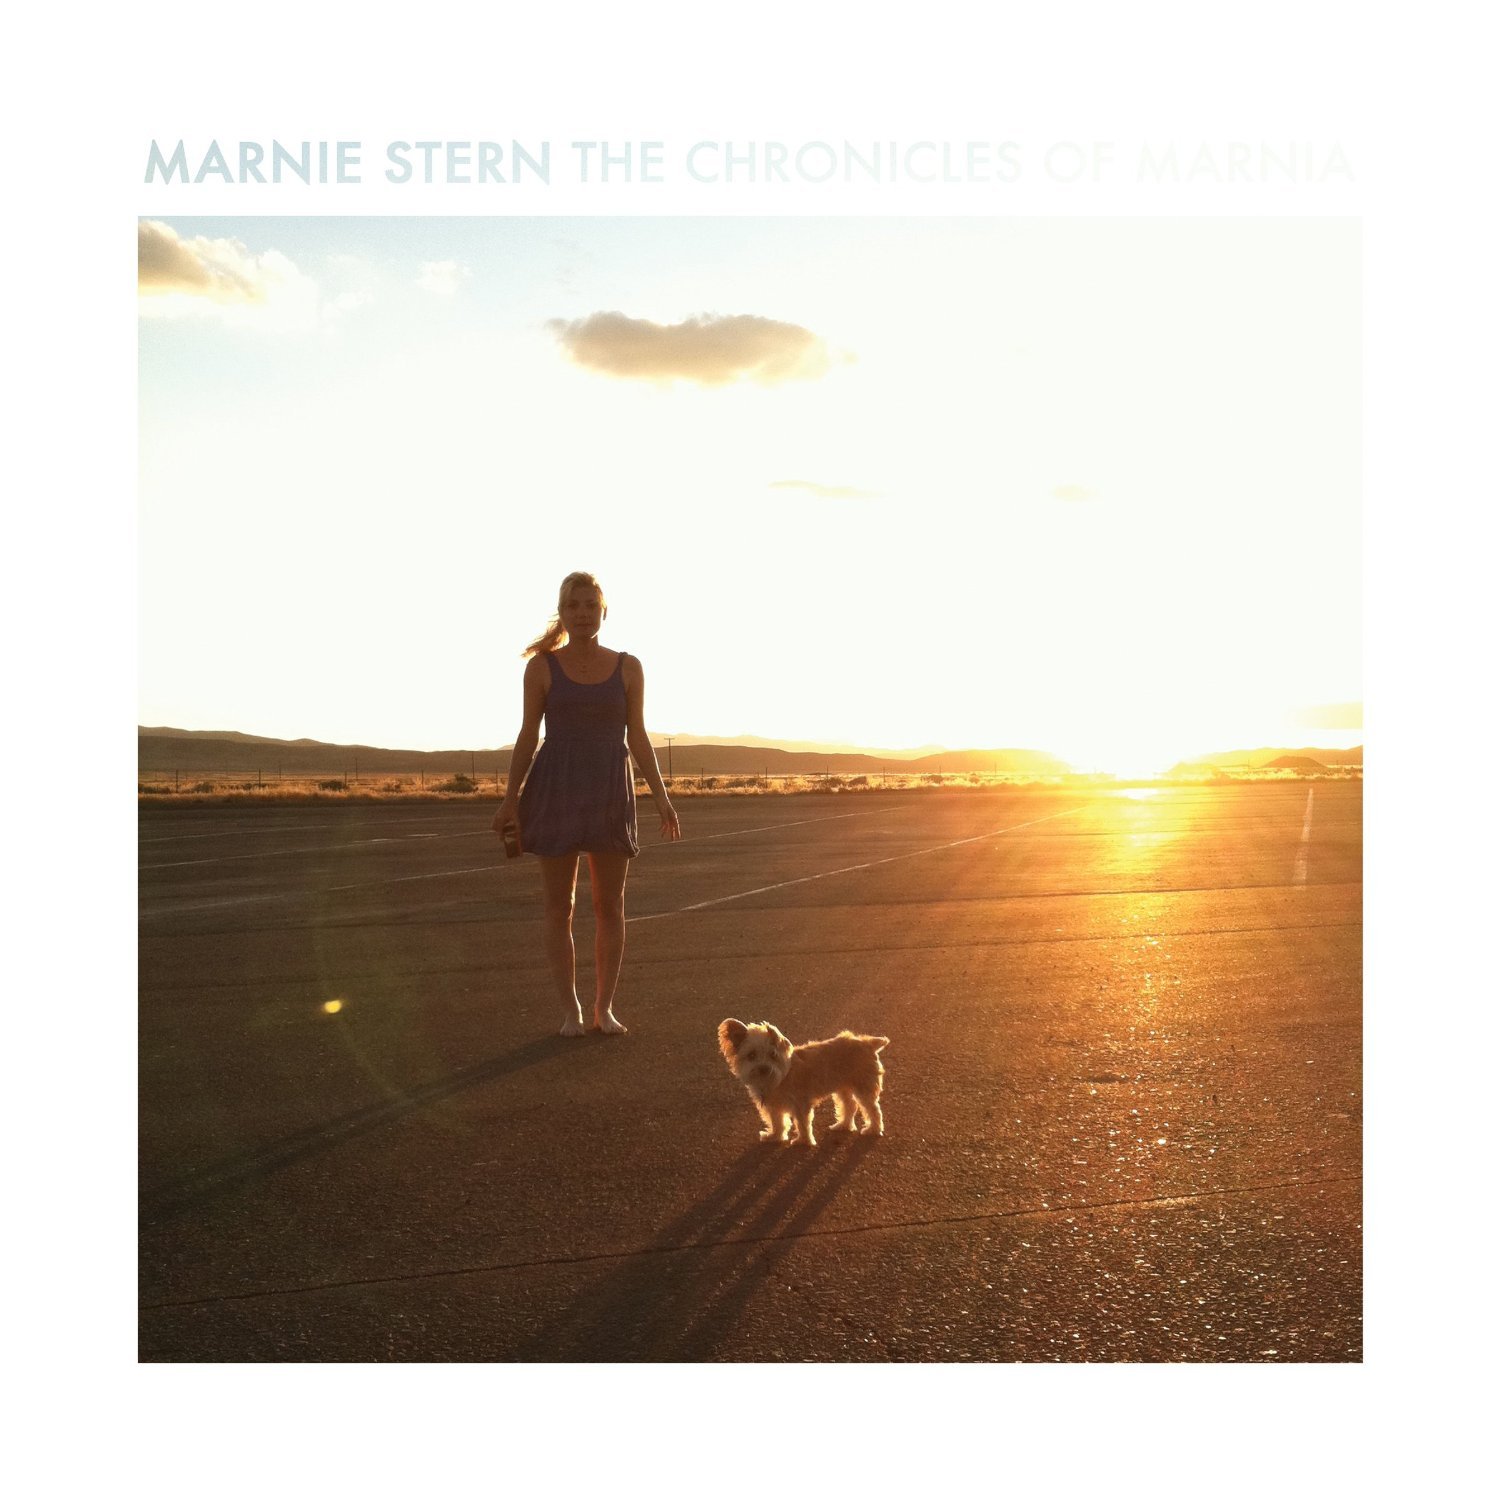 marnie-stern-chronicles-marnia